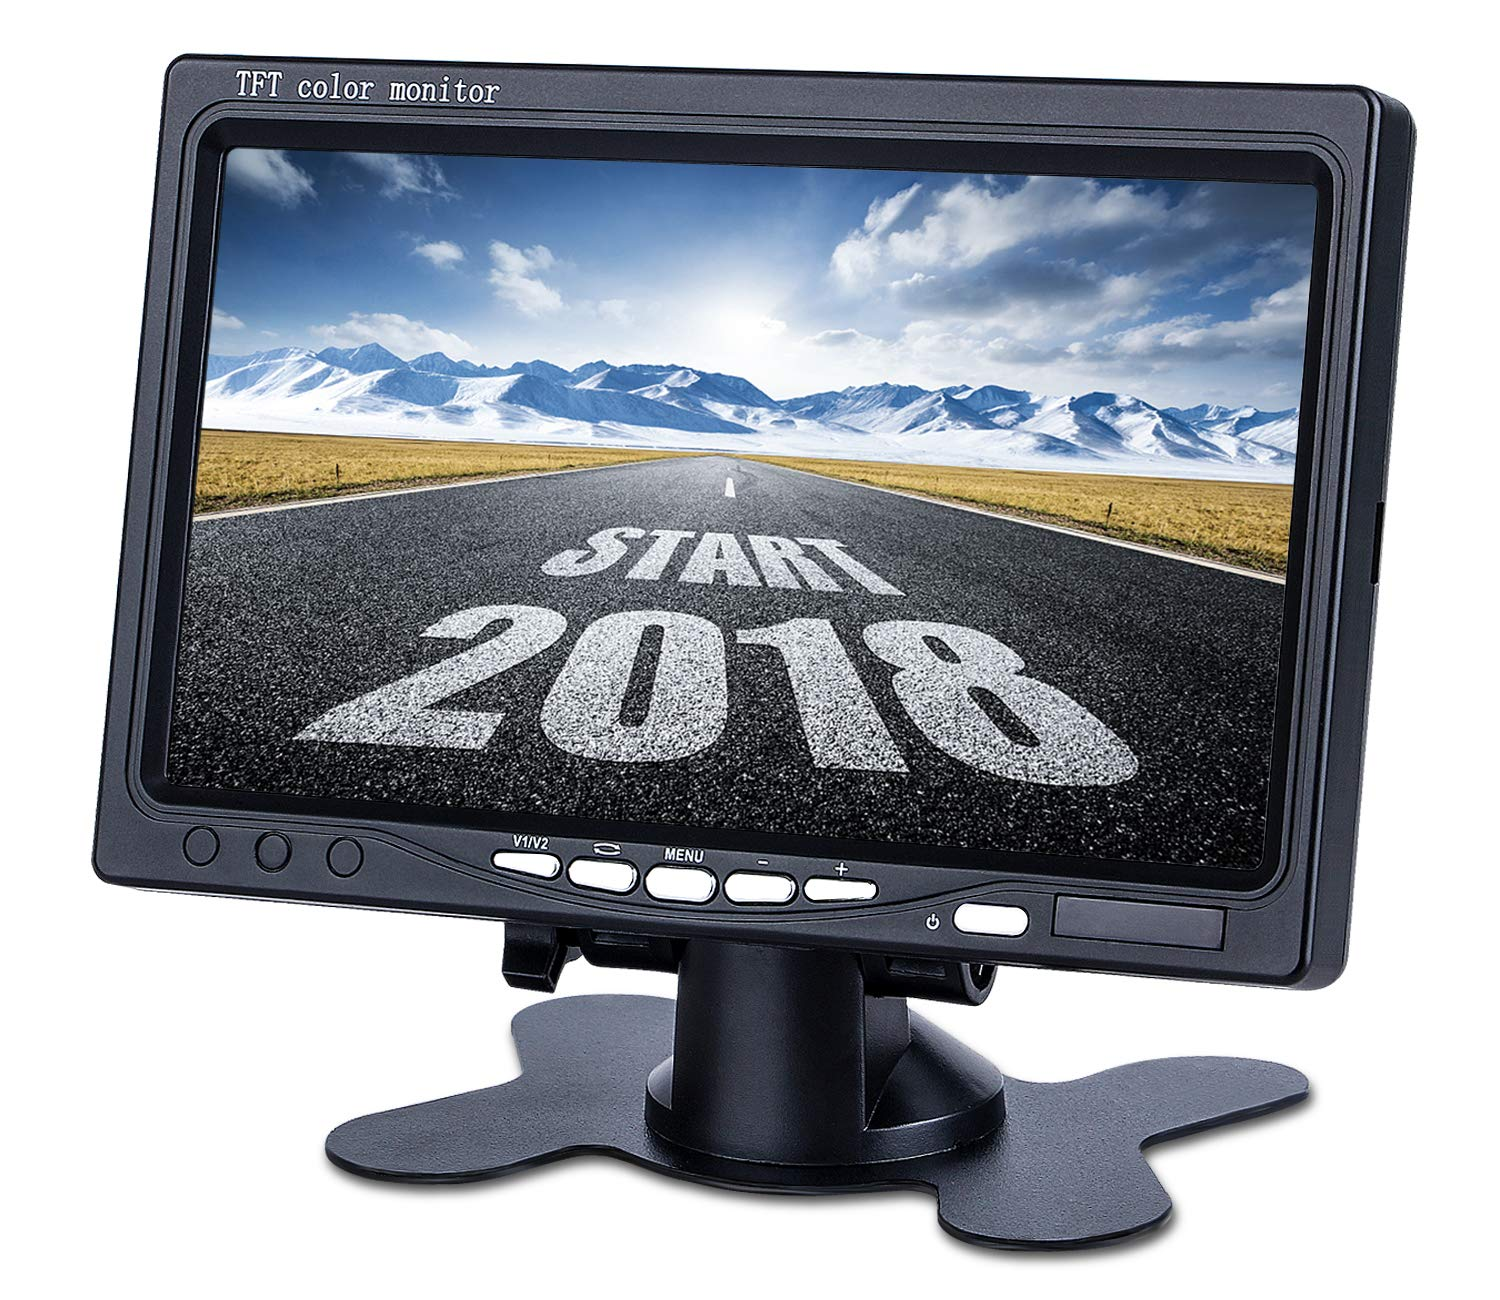 Upgrade Backup Camera Monitor 7 Inch Rearview Reversing LCD Monitor, 1024X600 Resolution Screen, Two Video Input Plug V1/V2 Car Rearview Cameras,— HD Transmission, Four-pin Interface — DVKNM (DBT)